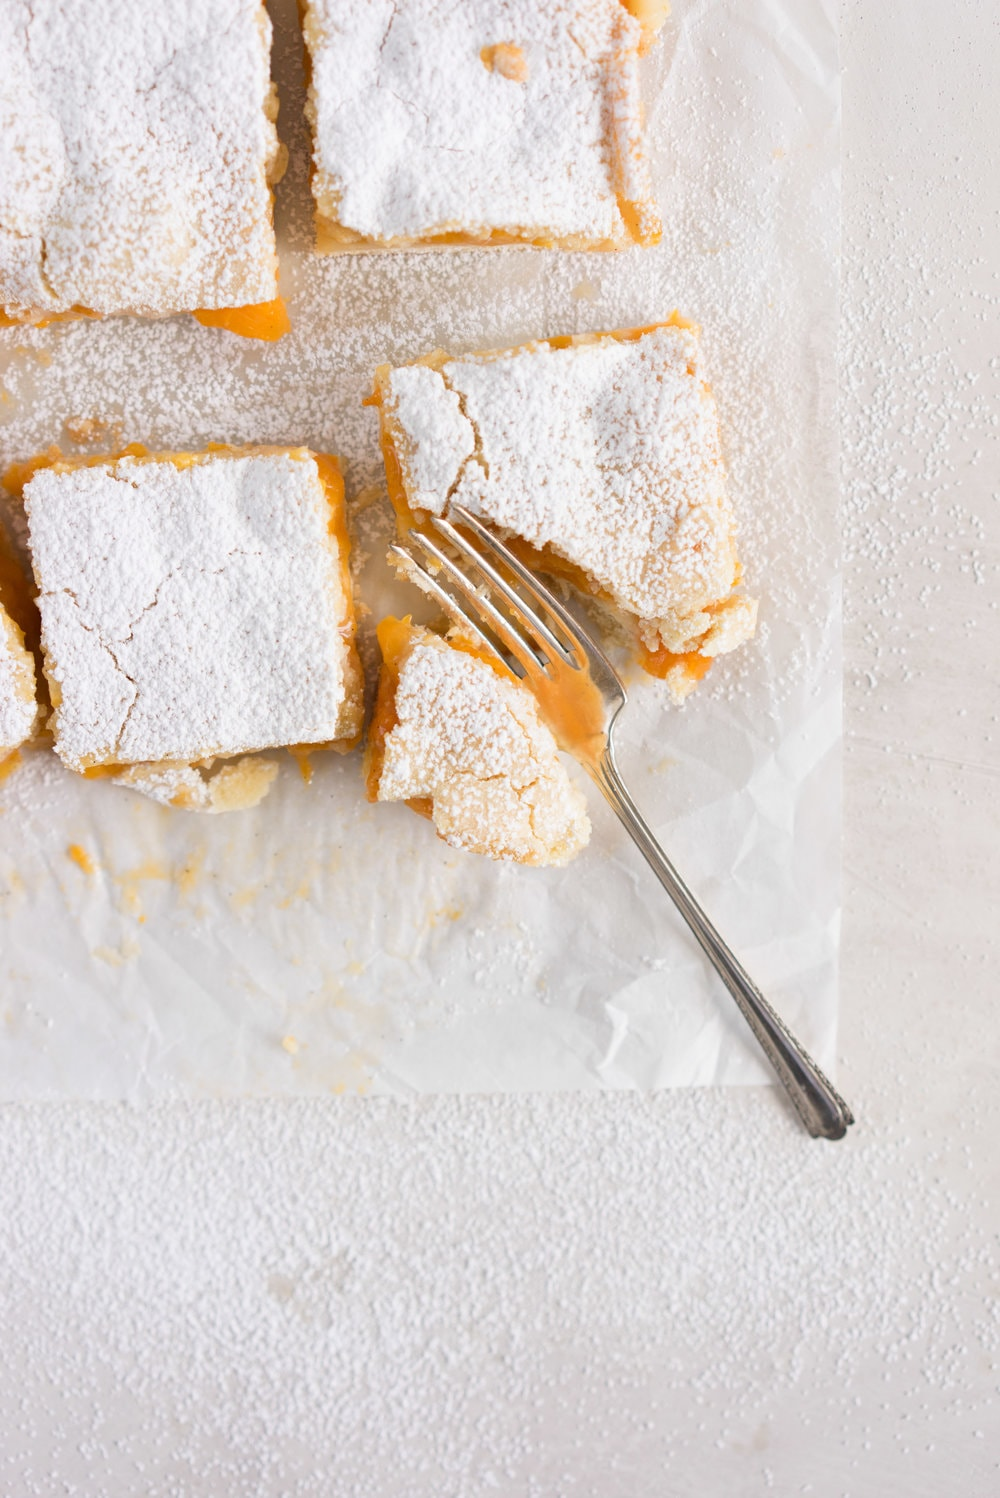 Apricot shortcake - a thick layer of apricot, lightly sweetened with honey, encased between layers of vanilla shortbread pastry. A classic favourite - perfect for a morning or afternoon tea. Super versatile, can be replicated with apple, pear, rhubarb etc